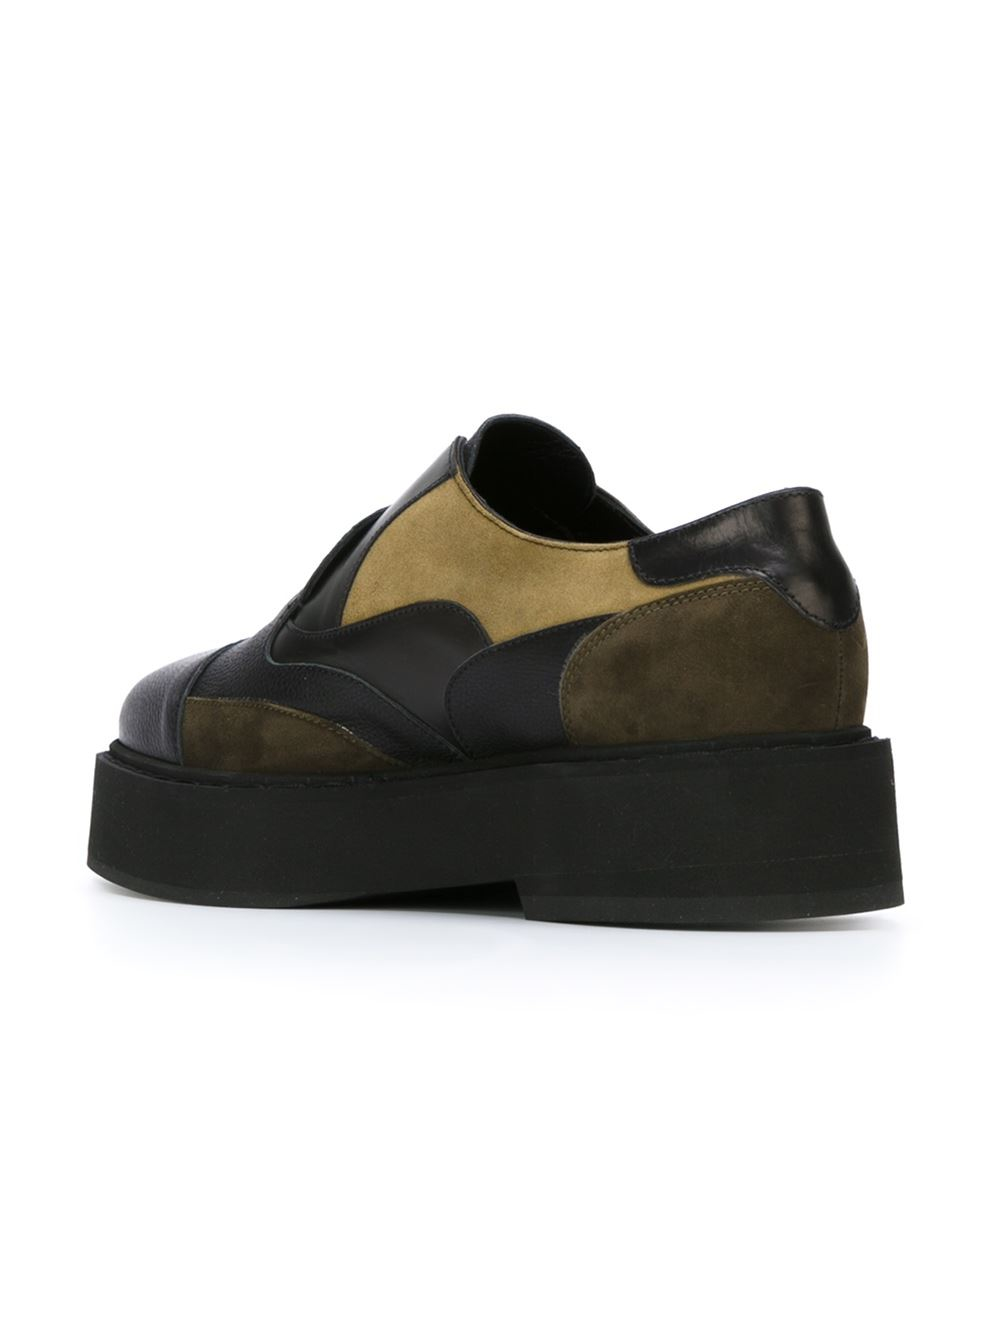 mcqueen panelled slip on shoes in yellow black